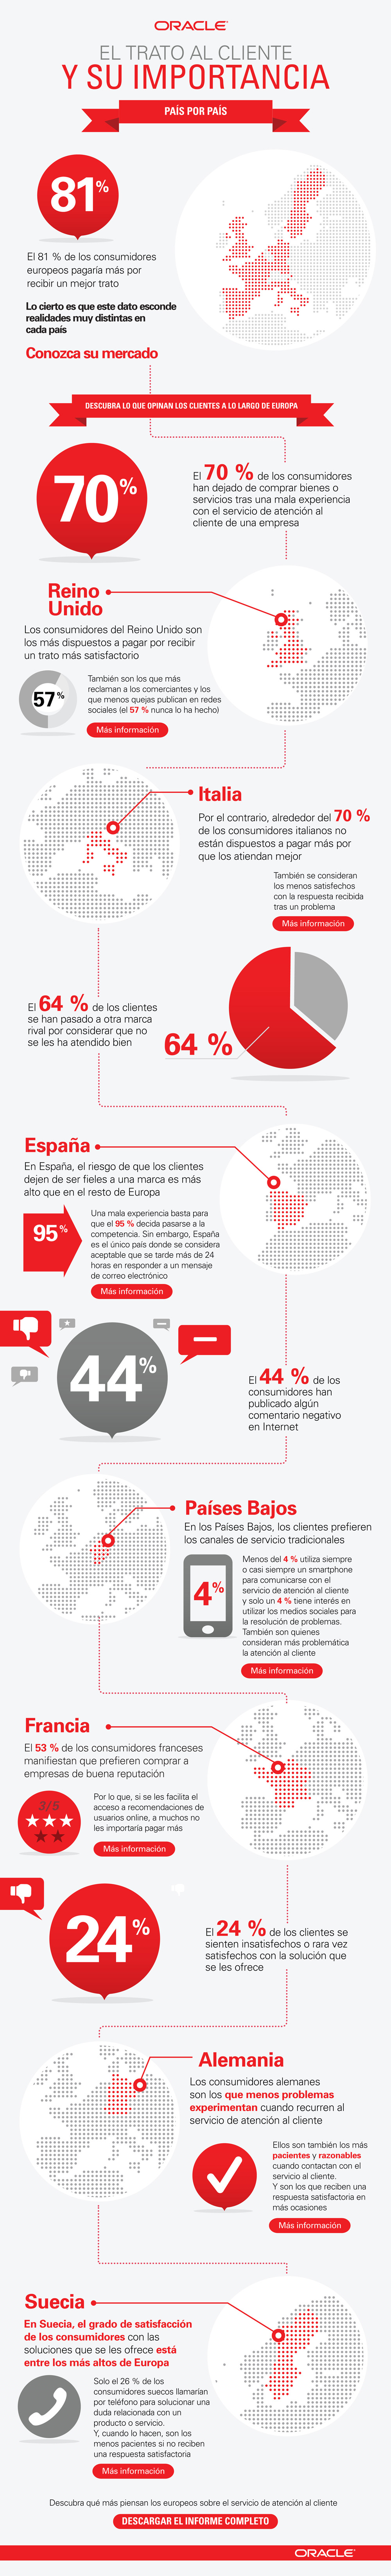 19733-Oracle-Emea-Campaign-Infographic-ES-V10-MM